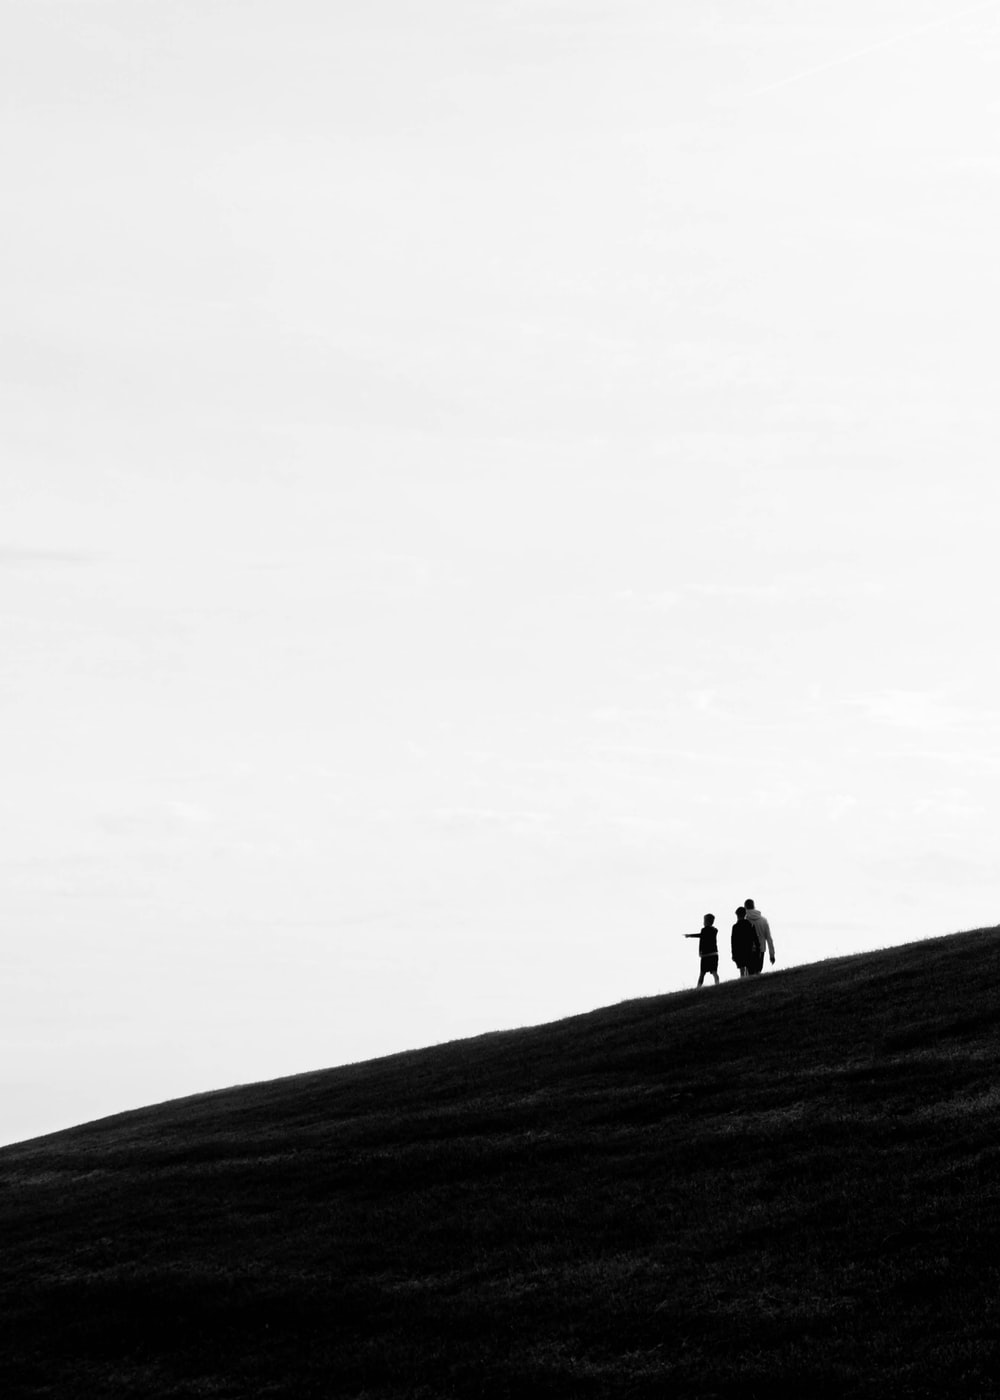 silhouette of 2 person walking on hill during daytime